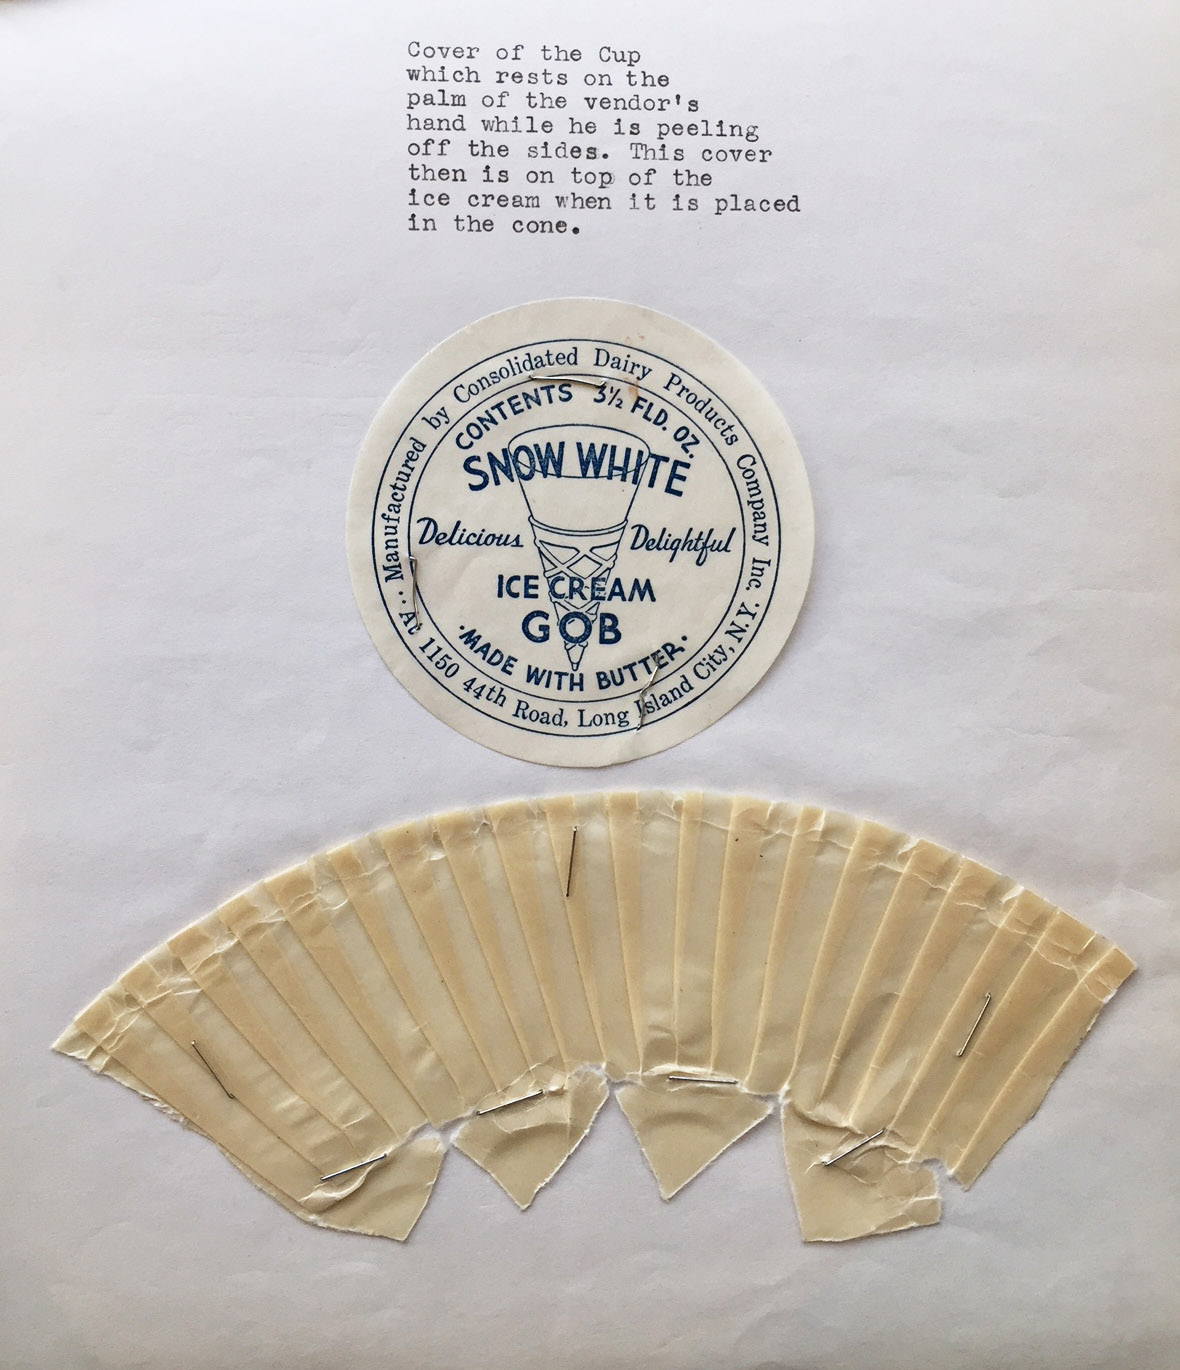 Ice cream wrapper sent to Department of Health by manufacturer in 1941.Department of Health collection, NYC Municipal Archives.